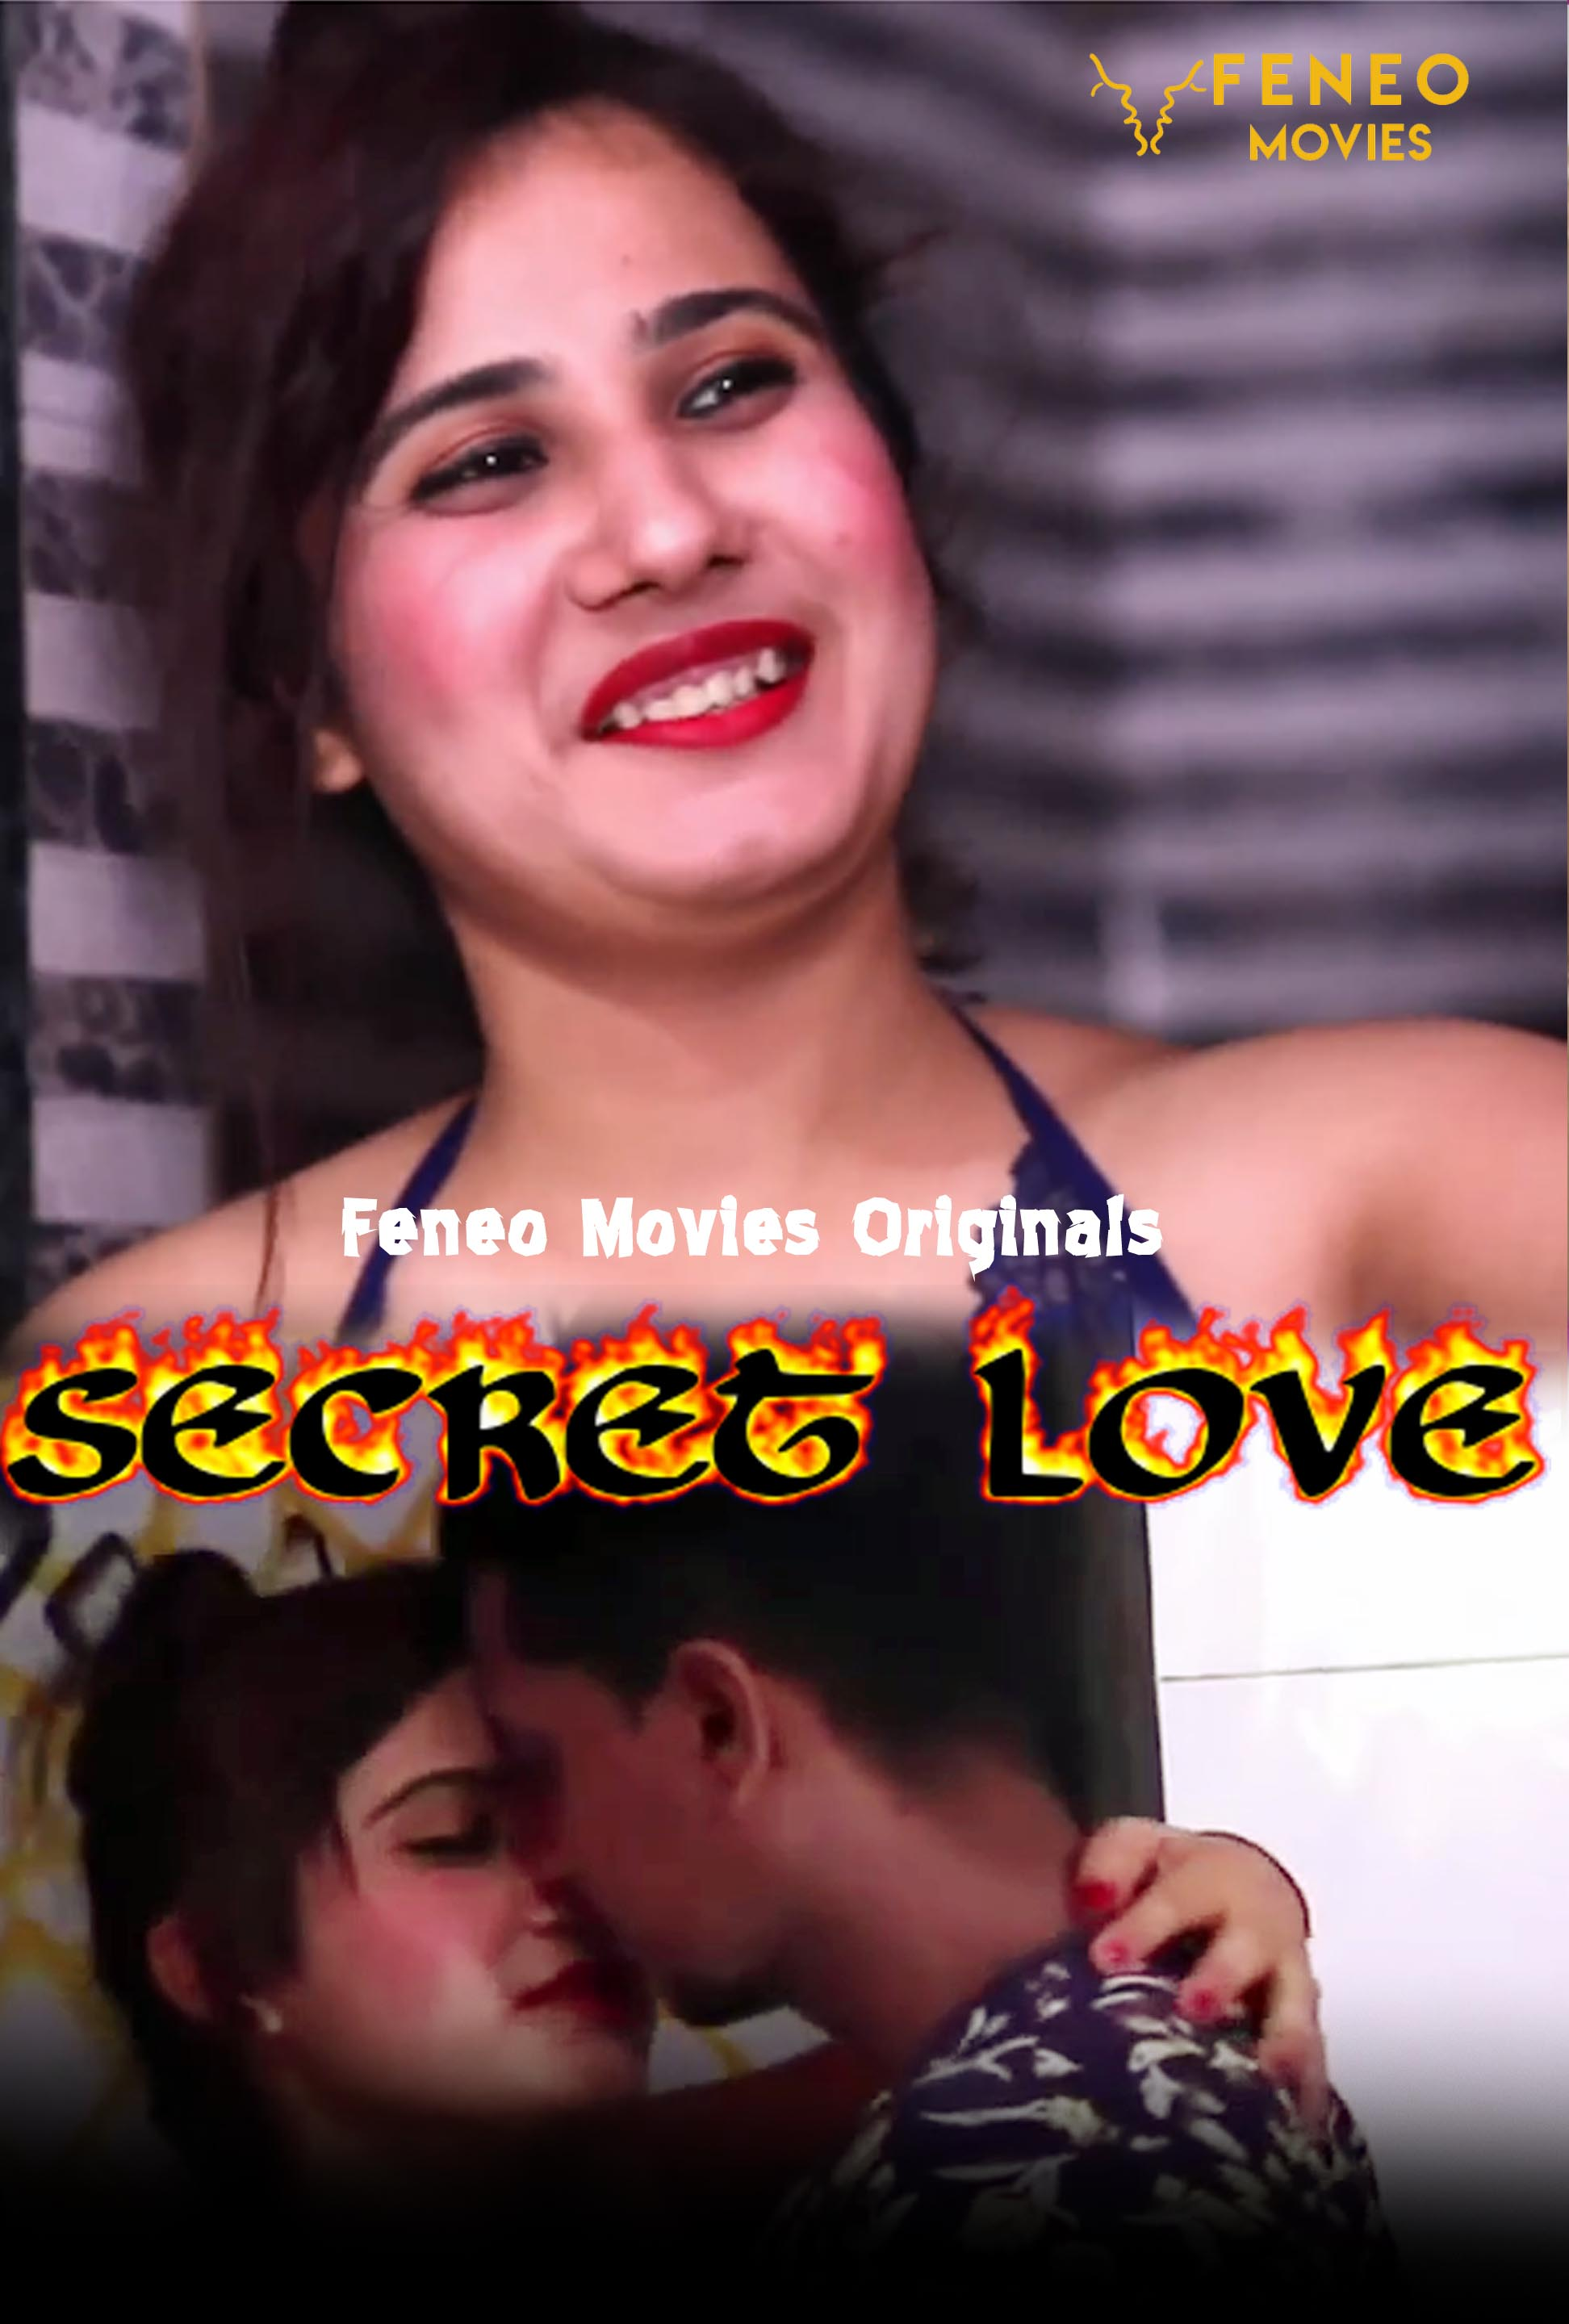 18+ Secret Love 2020 S01E02 Hindi Feneomovies Original Web Series 720p HDRip 210MB Watch Online